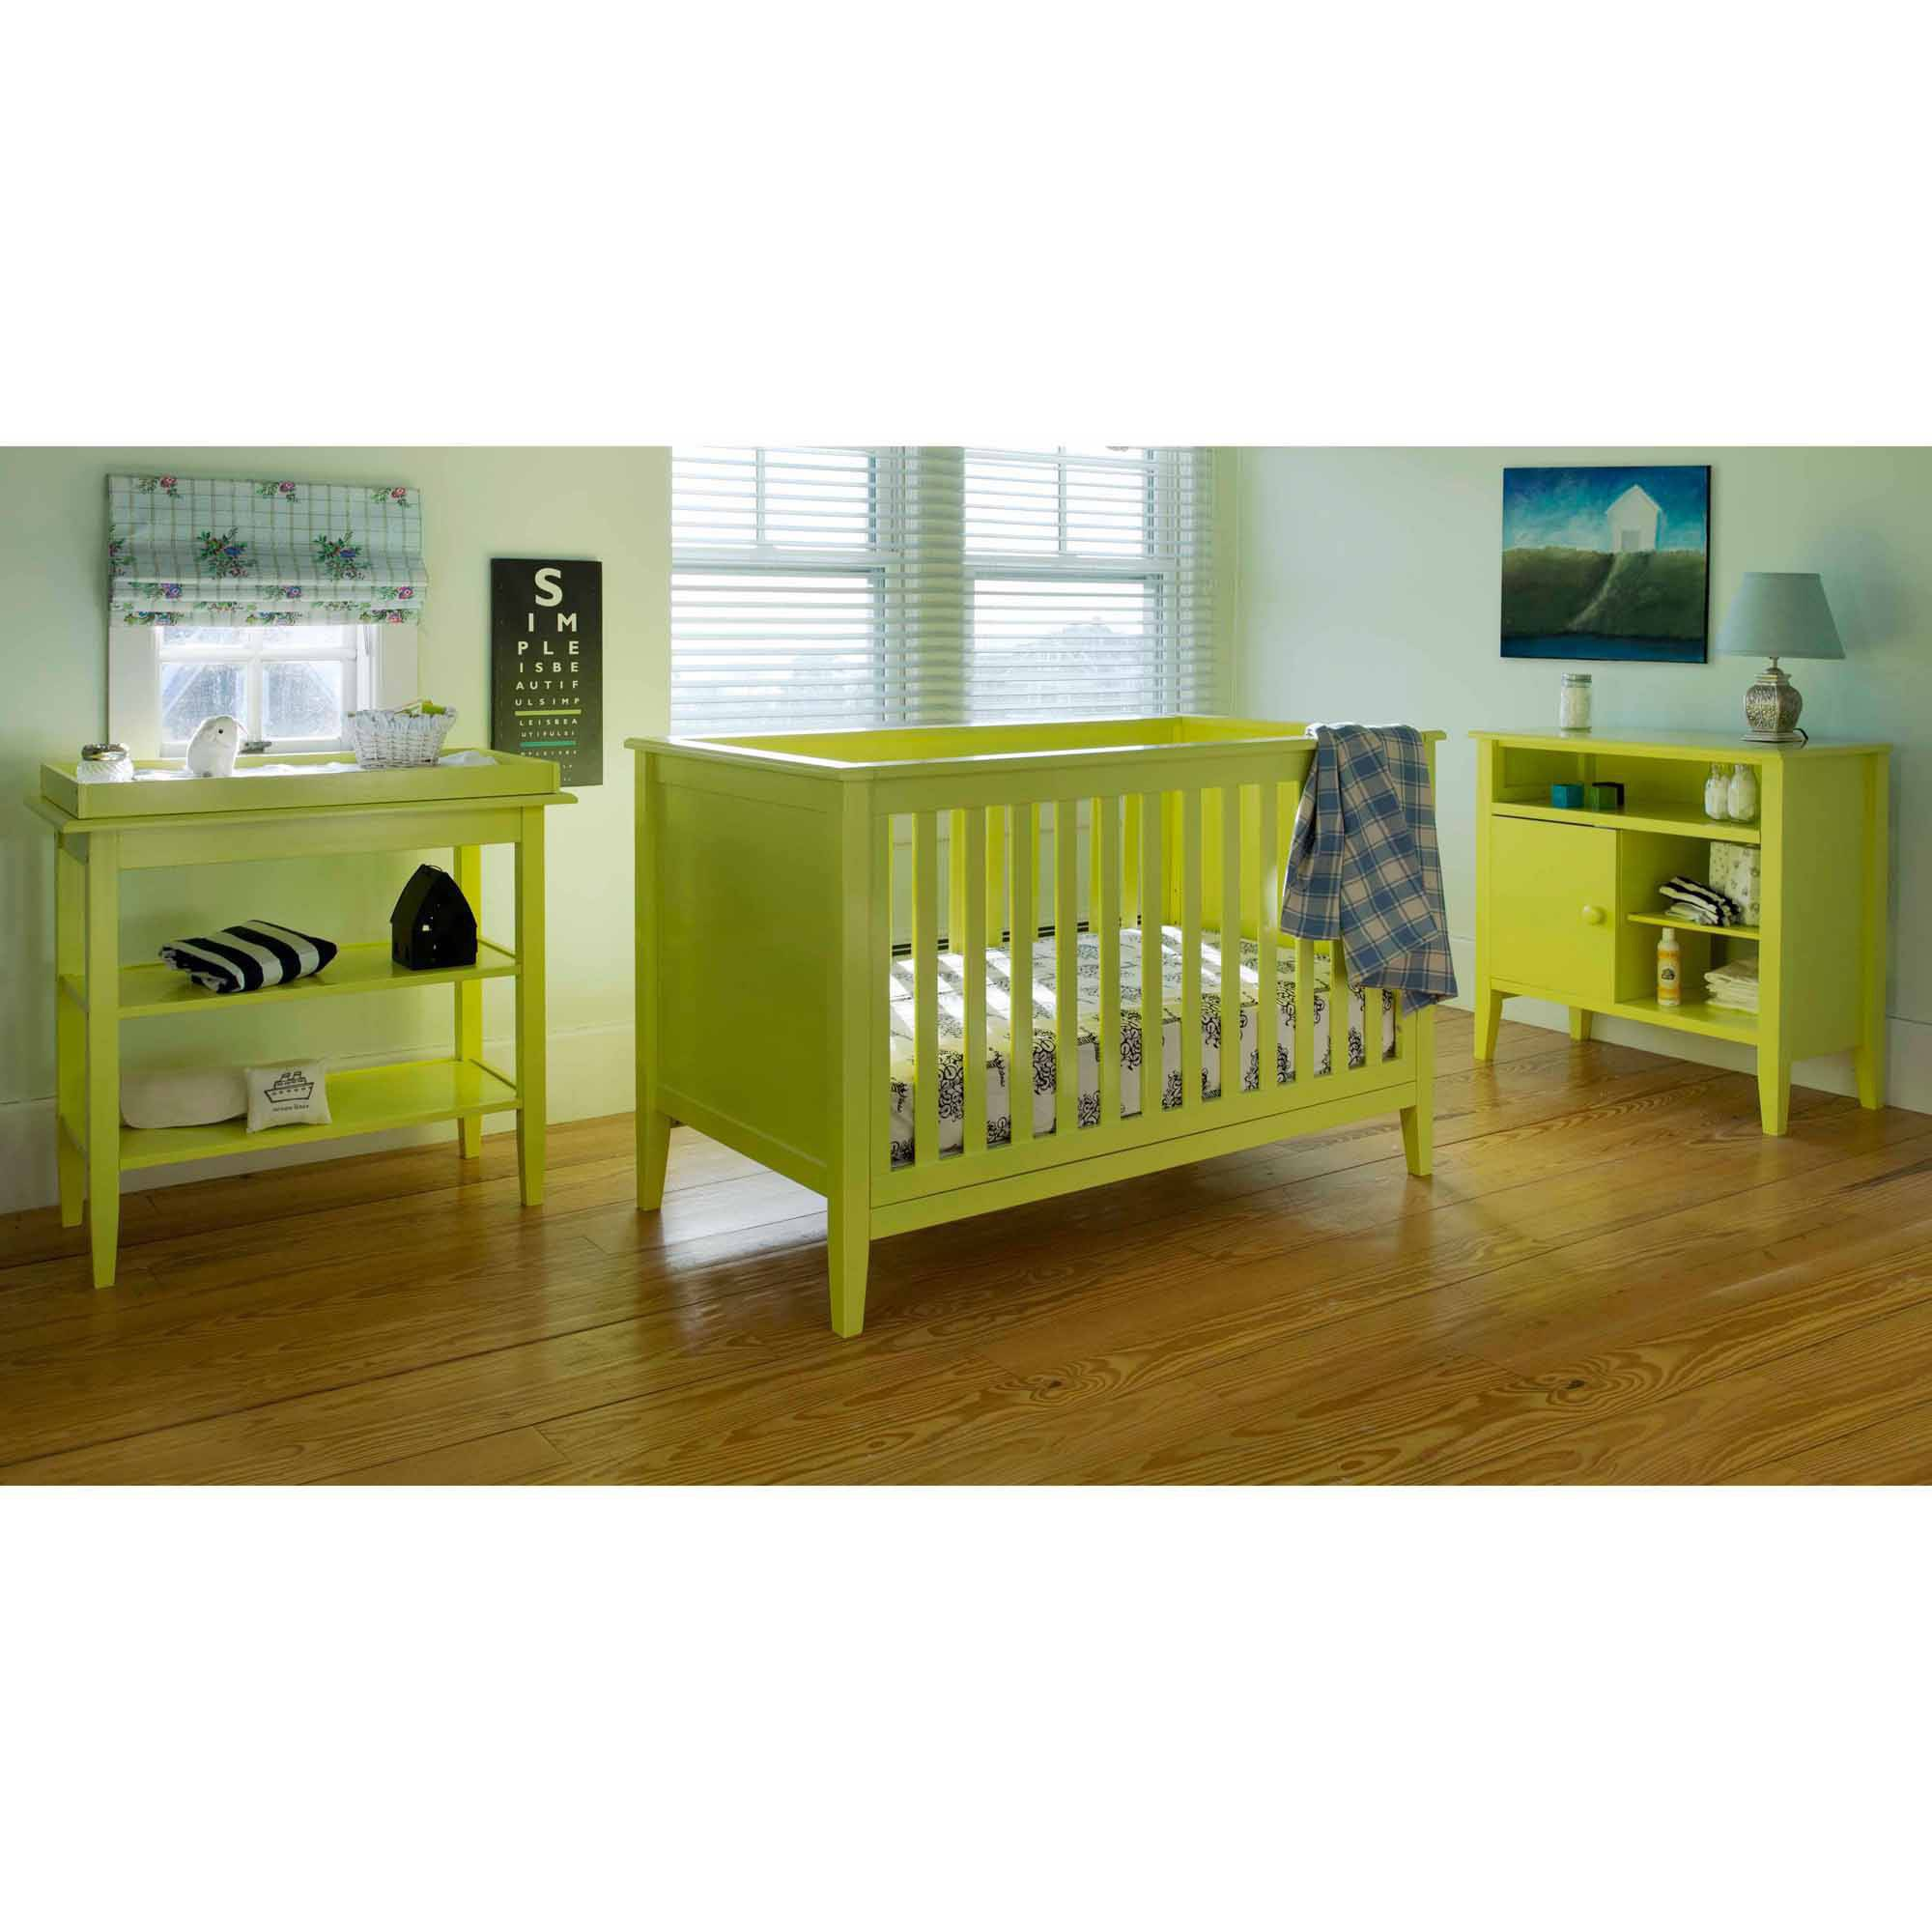 Lolly and Me COLOR ME 3-in-1 Convertible Lifestyle Crib, Citron Yellow